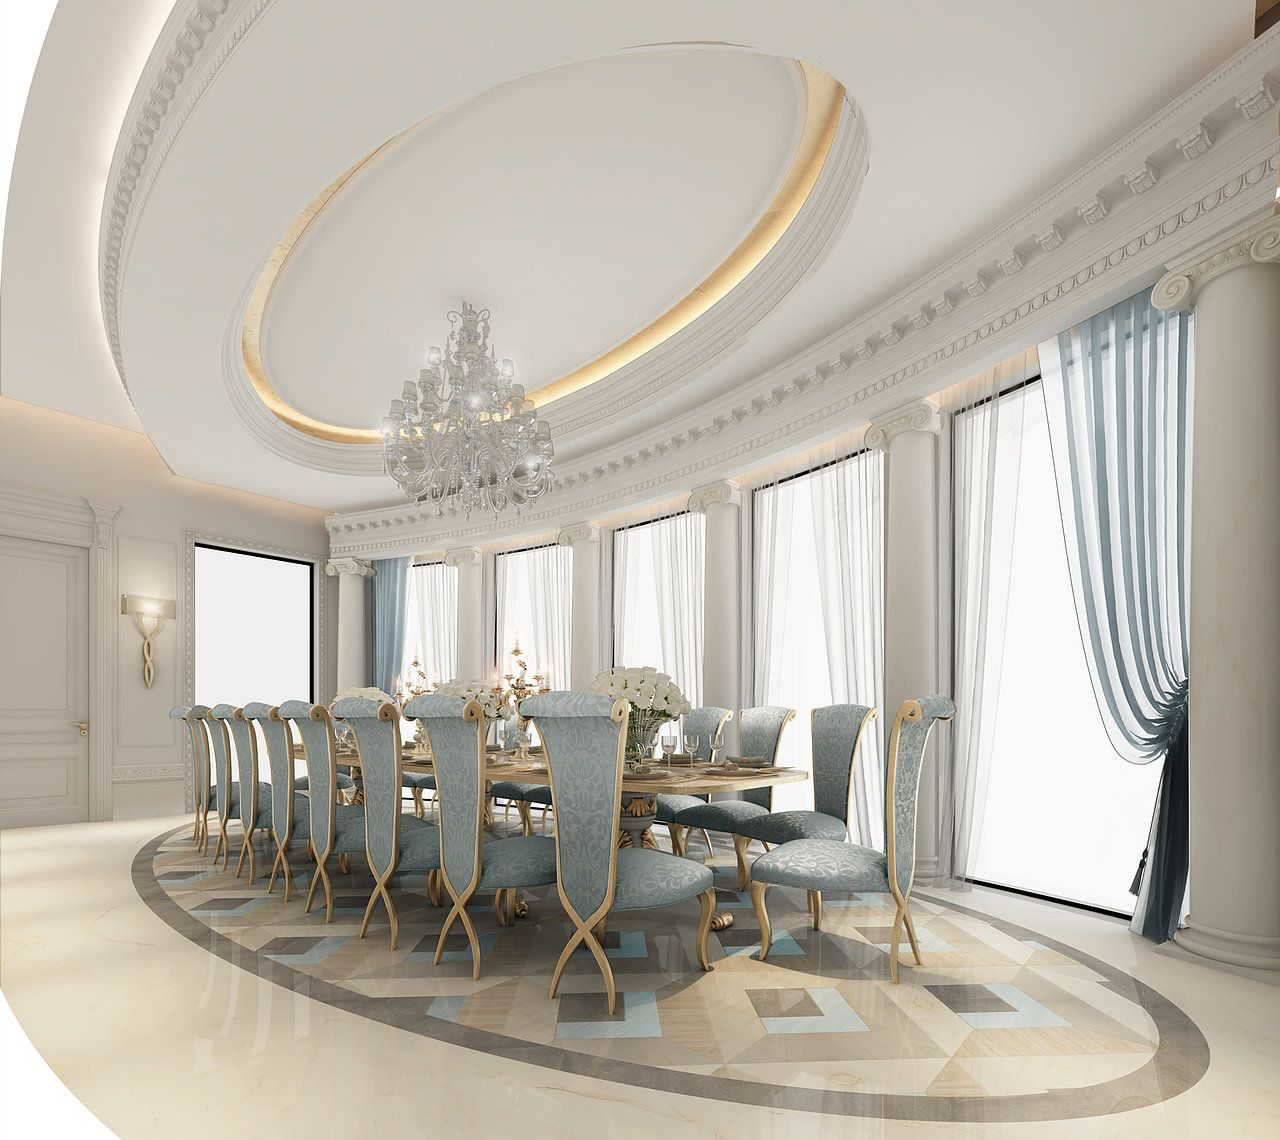 Ions one the leading interior design companies in dubai ovides home commercial retail and office designs luxury also best ceiling gypsum decoration images on pinterest rh